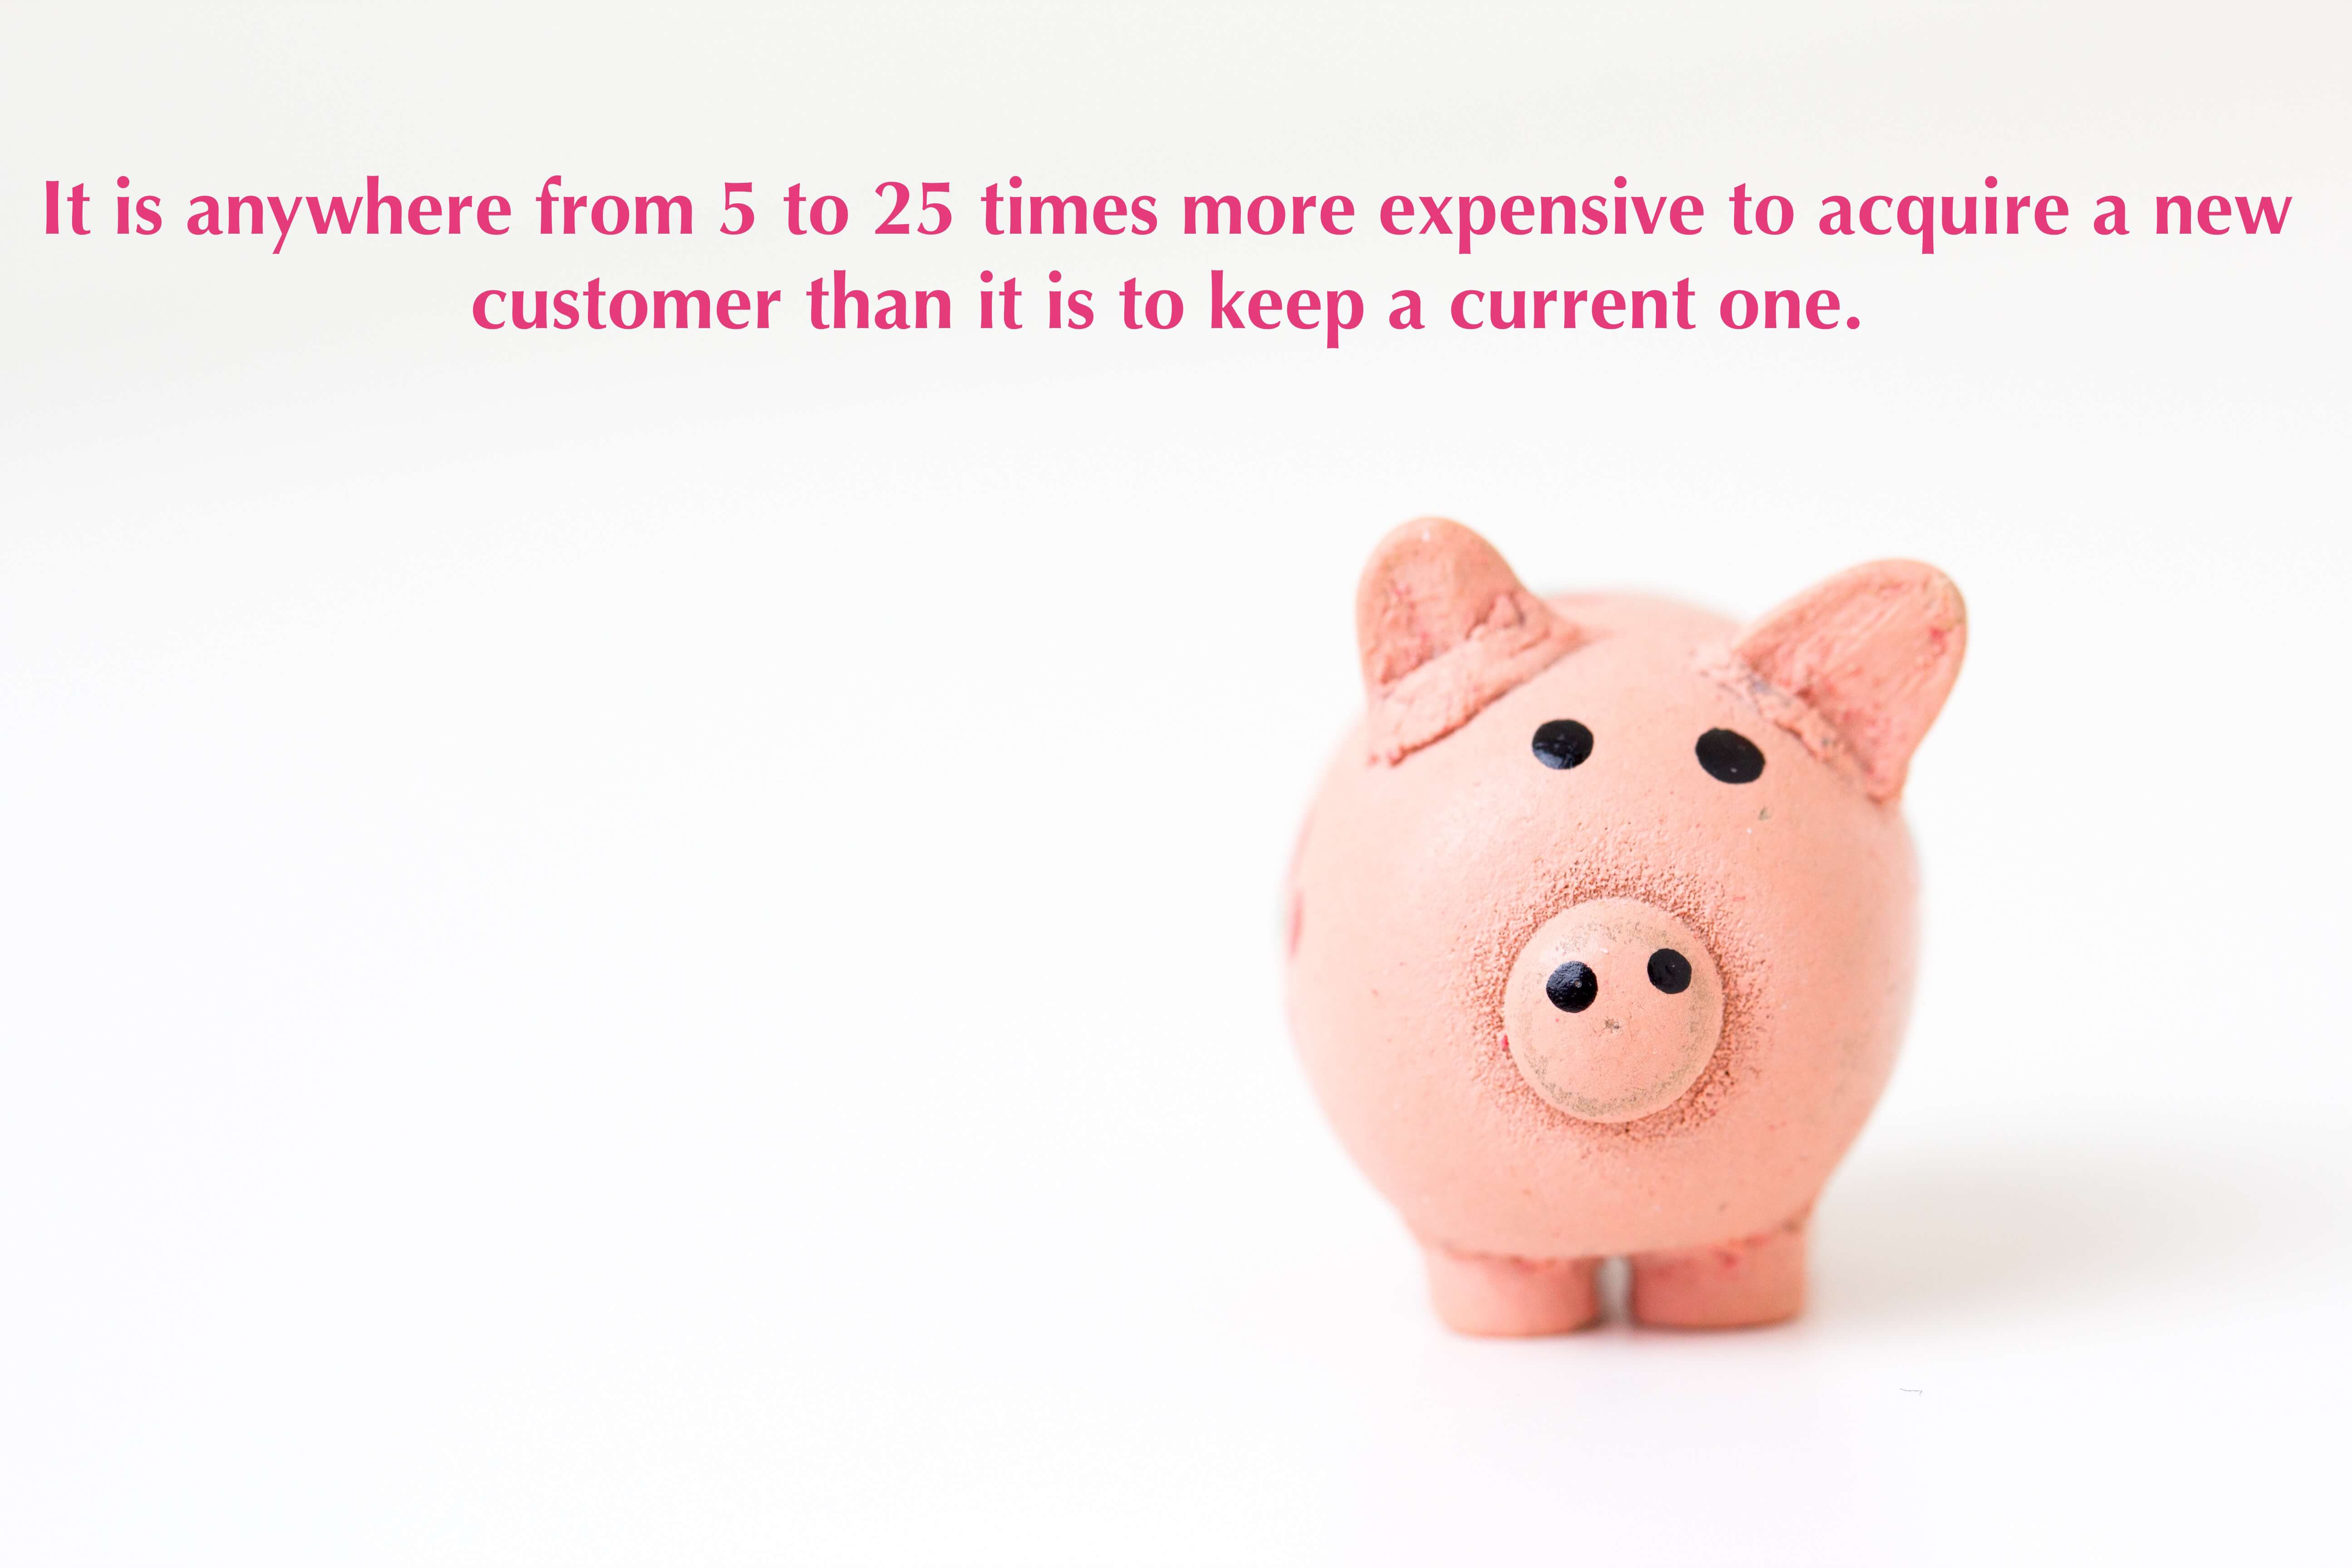 It is anywhere from 5 to 25 times more expensive to acquire a new customer than it is to keep a current one.